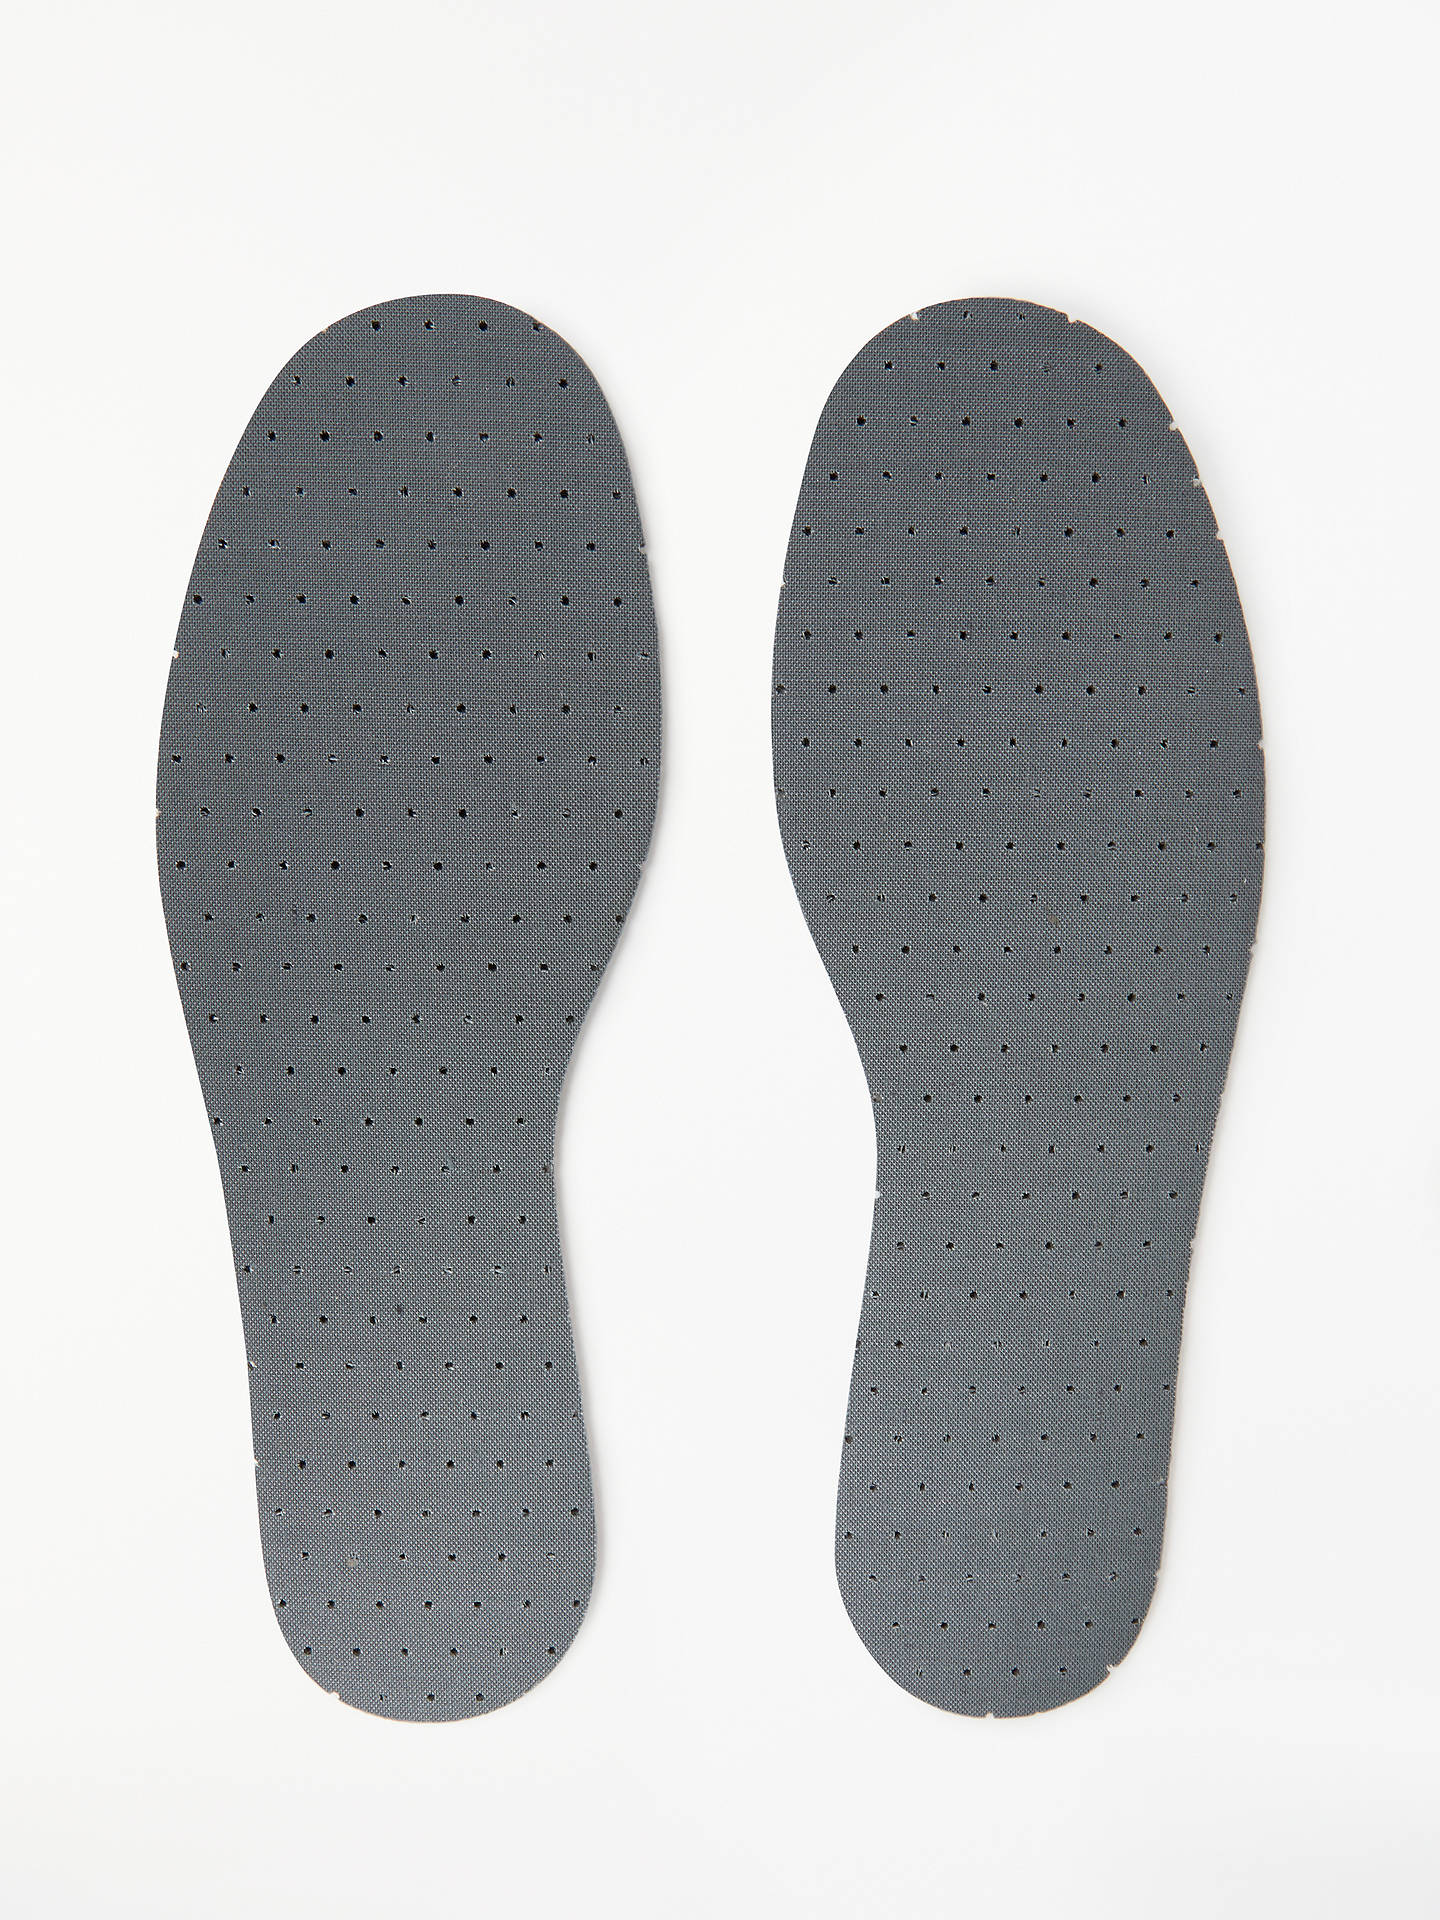 Buy Cherry Blossom Children's Fresh Foam Insoles, Neutral, 1 Online at johnlewis.com